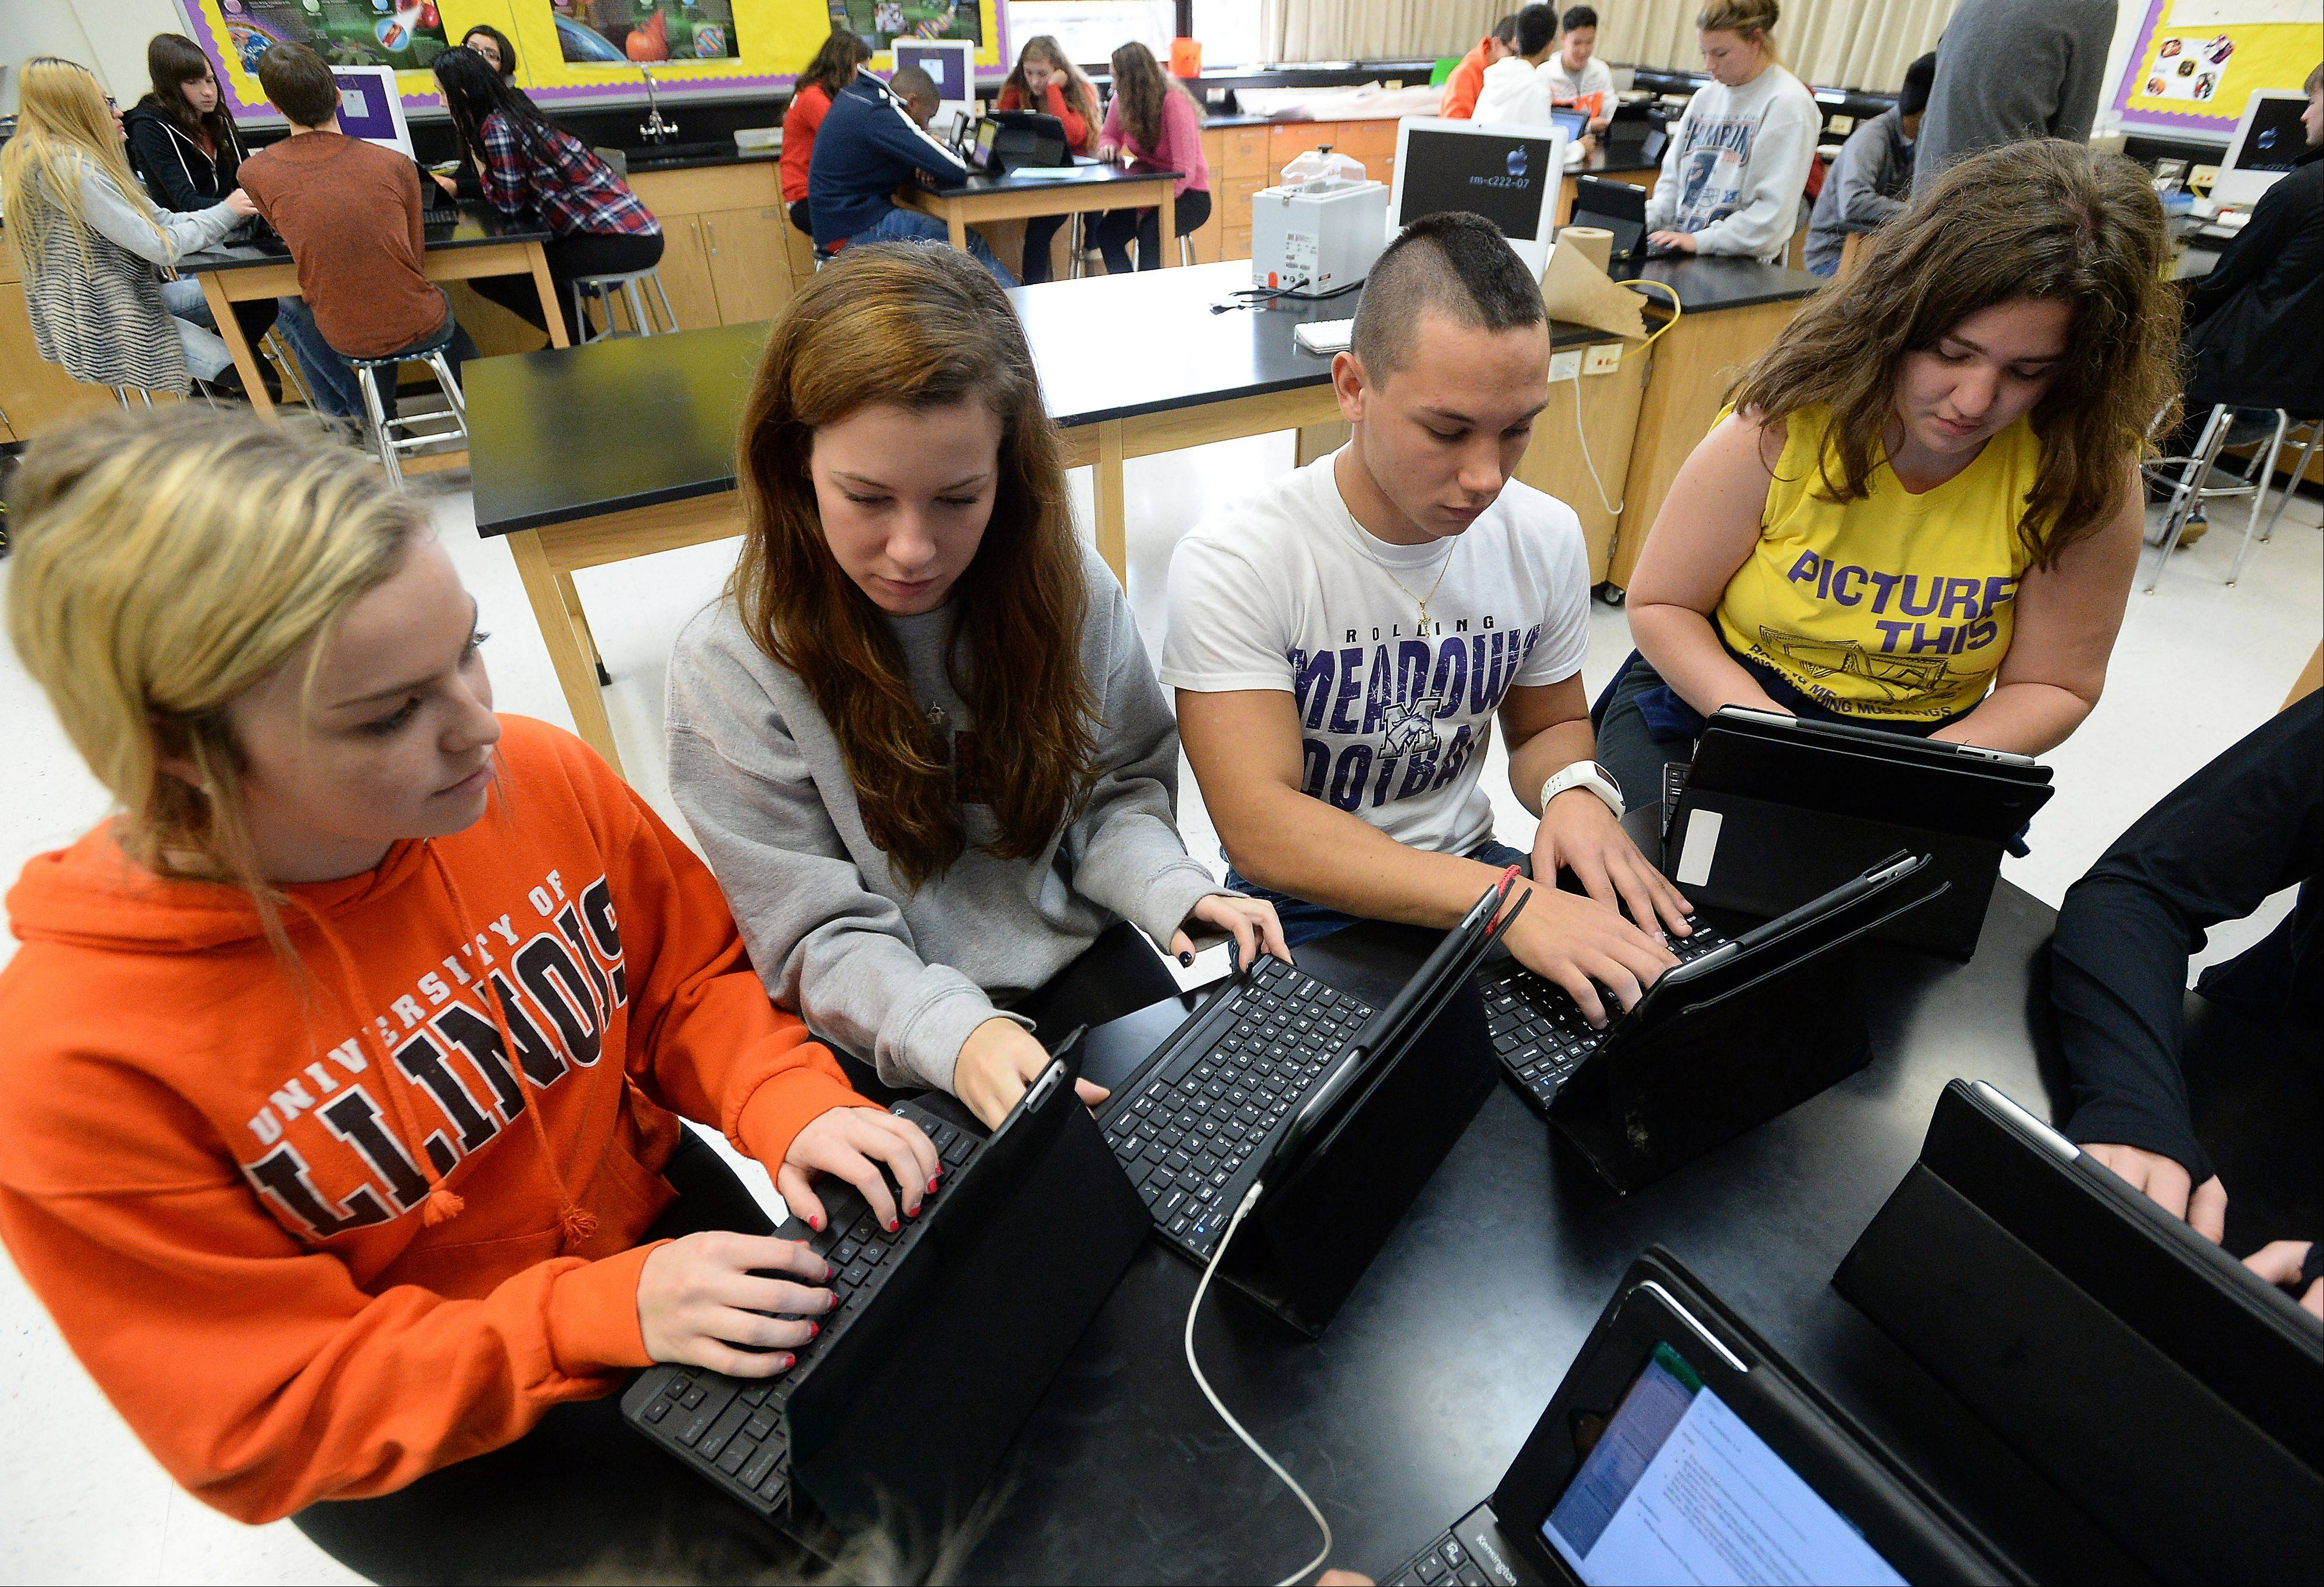 Advanced Placement biology students, from left, Shannon Gavin, Chloe Swindells, Will Hoppe and Desdemona Alvarez use iPads to study evolution at Rolling Meadows High School.